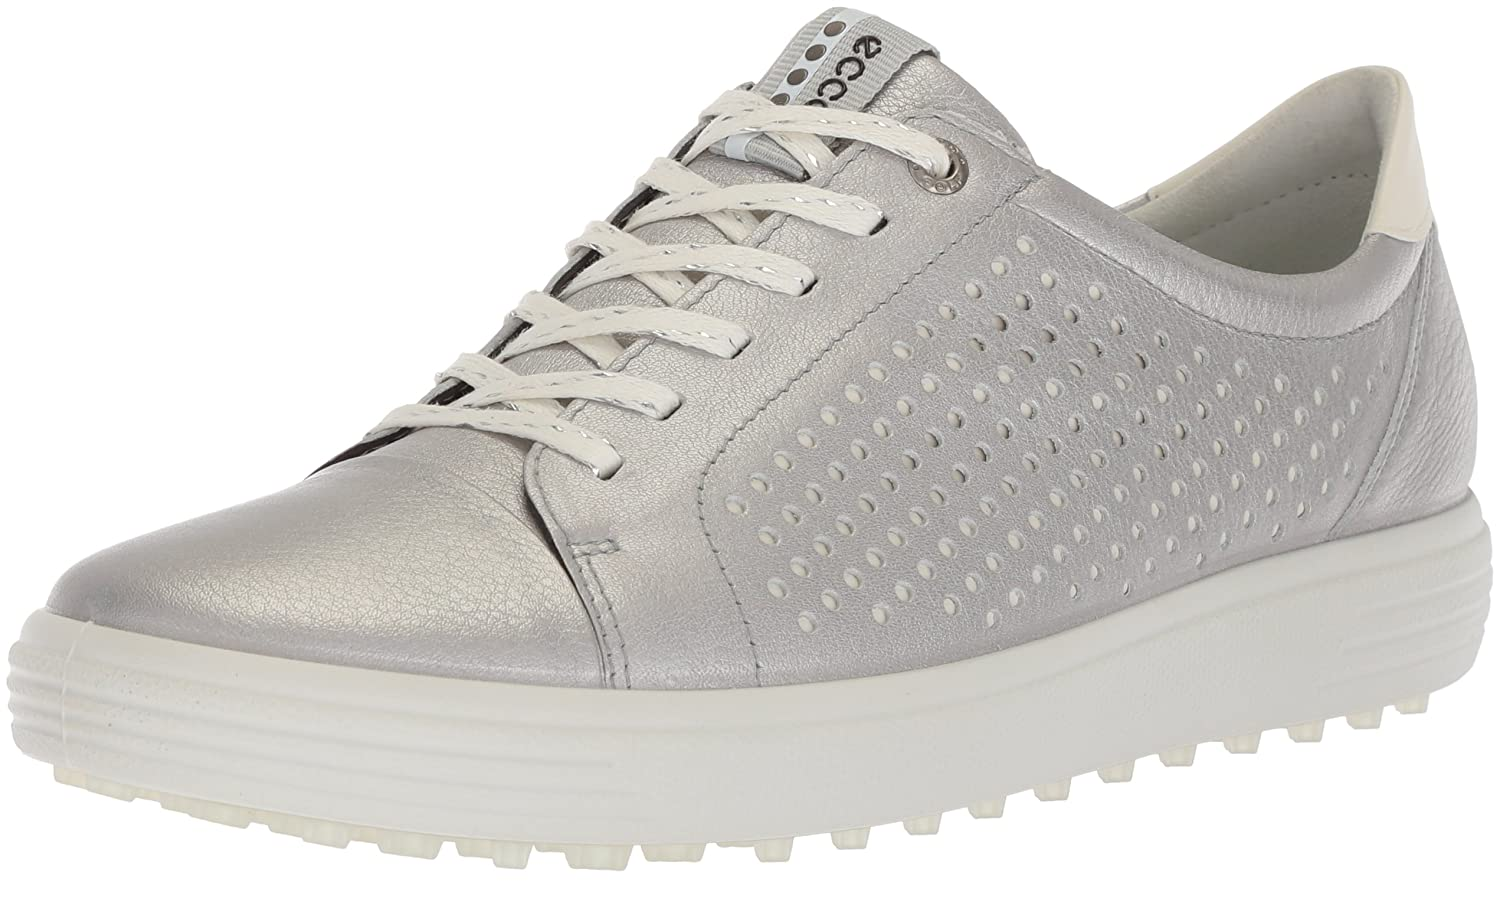 ECCO Women's Casual Hybrid Perforated Golf Shoe B074F8K681 37 M EU (6-6.5 US)|Alusilver